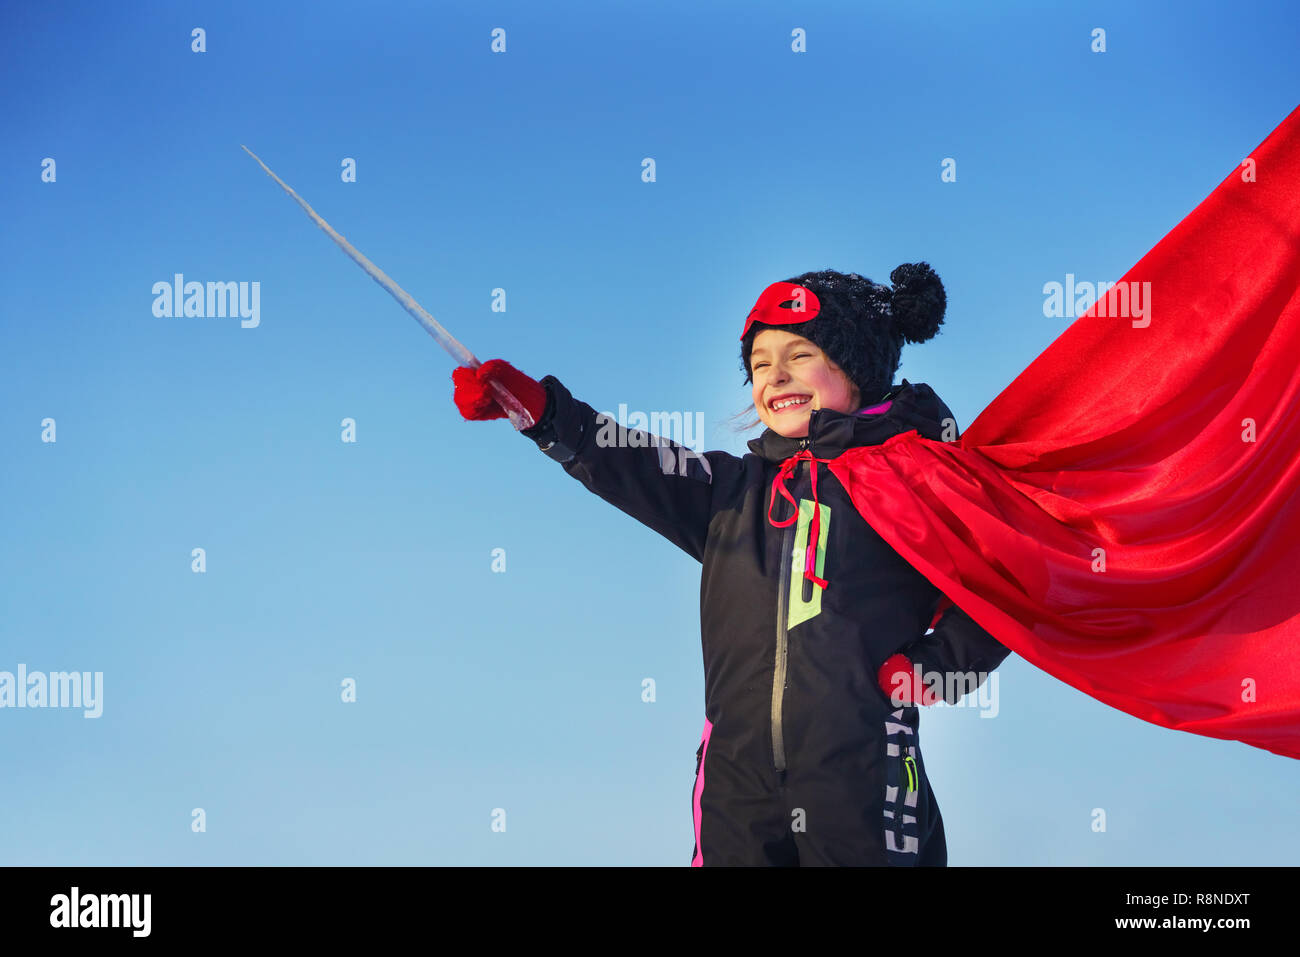 Funny little girl playing power super hero. - Stock Image